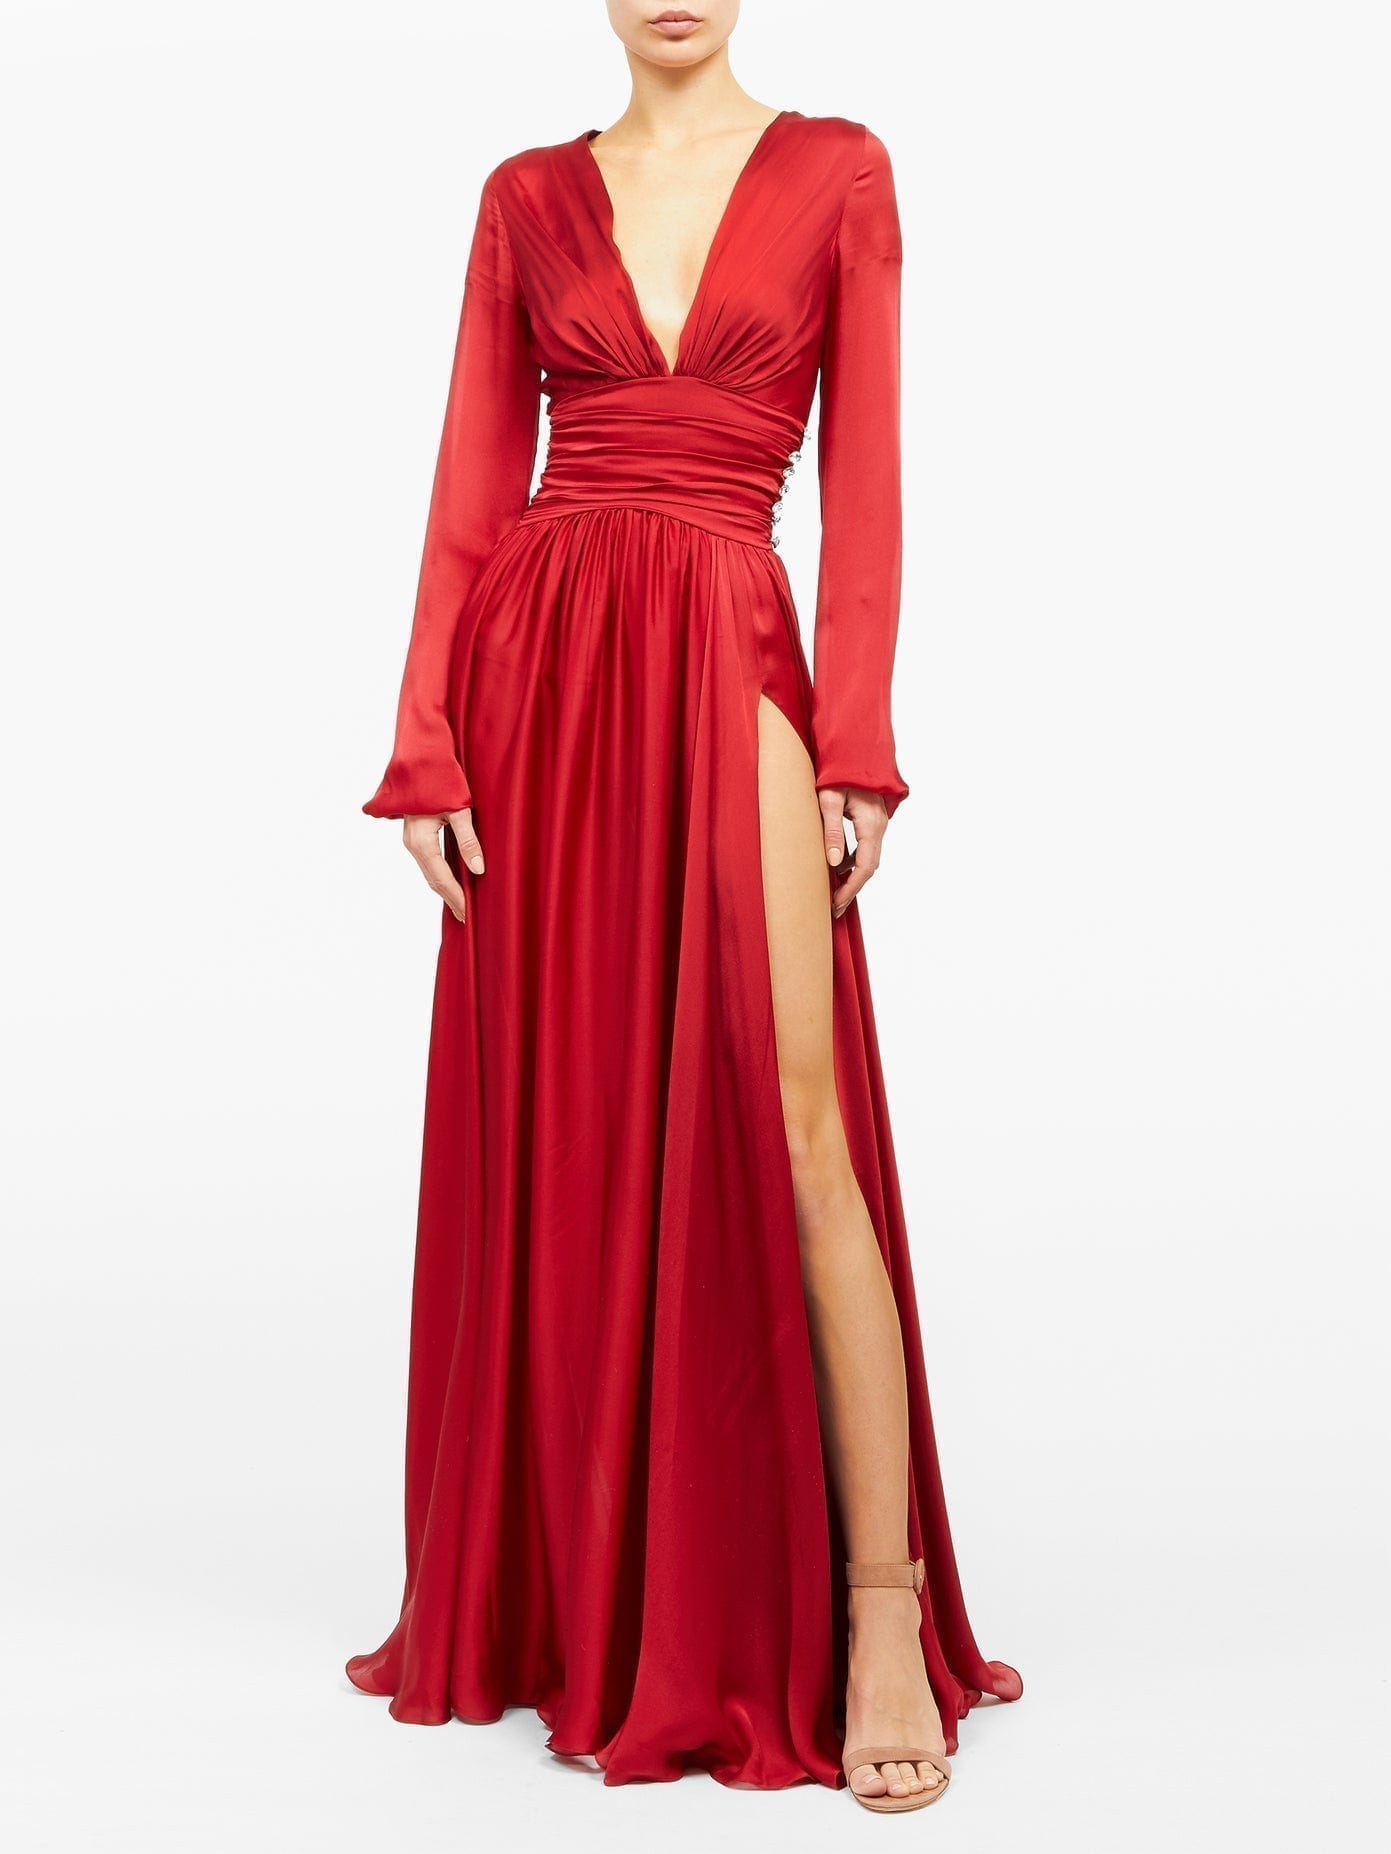 ALEXANDRE VAUTHIER Plunge-neck Side-slit Gown